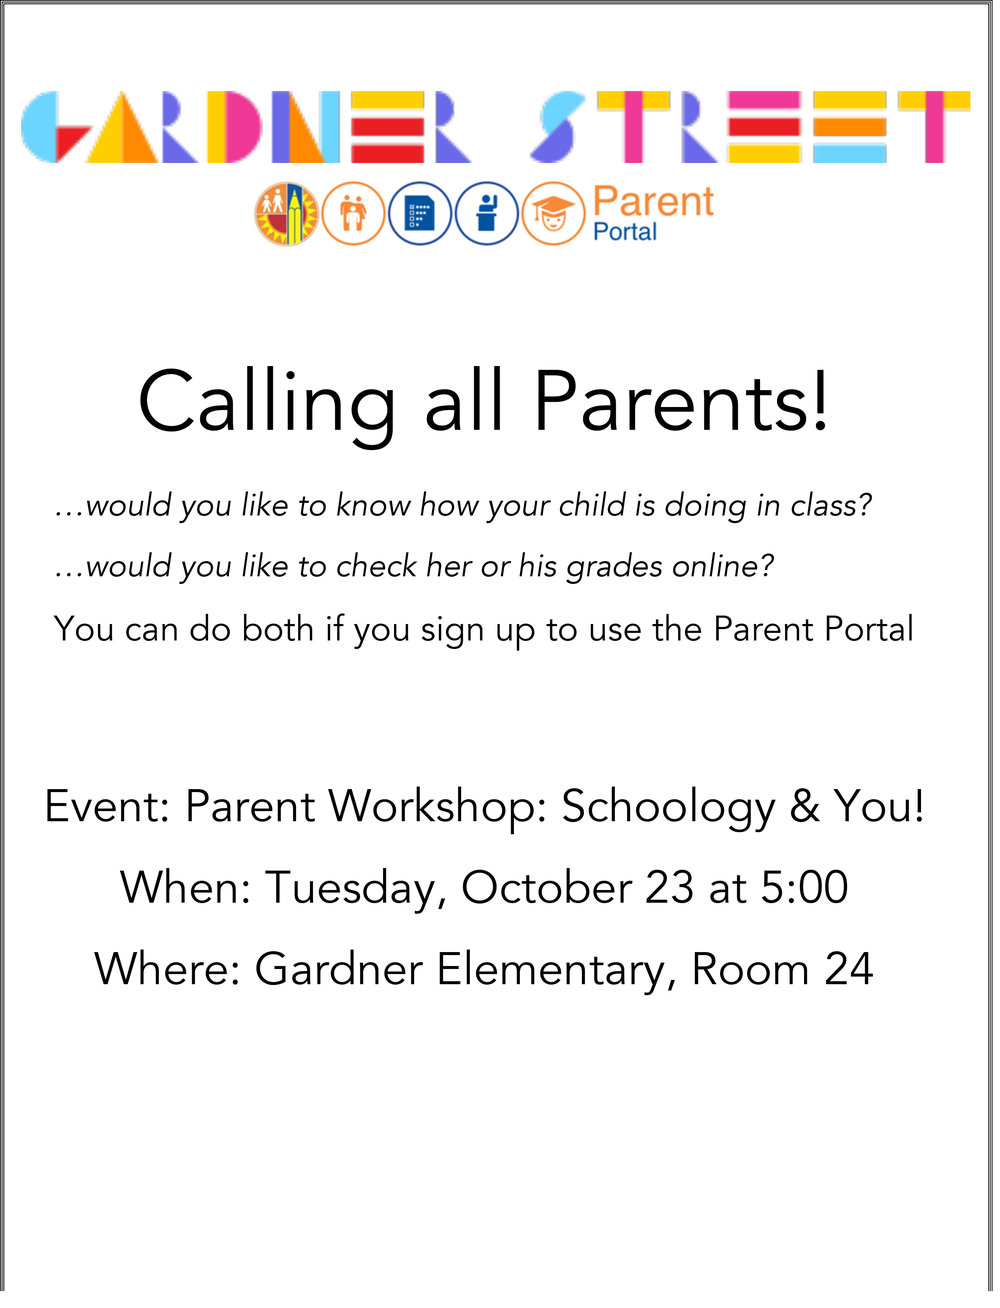 NEW-Parent-Flyer---Schoology-Parent-Workshop.jpg